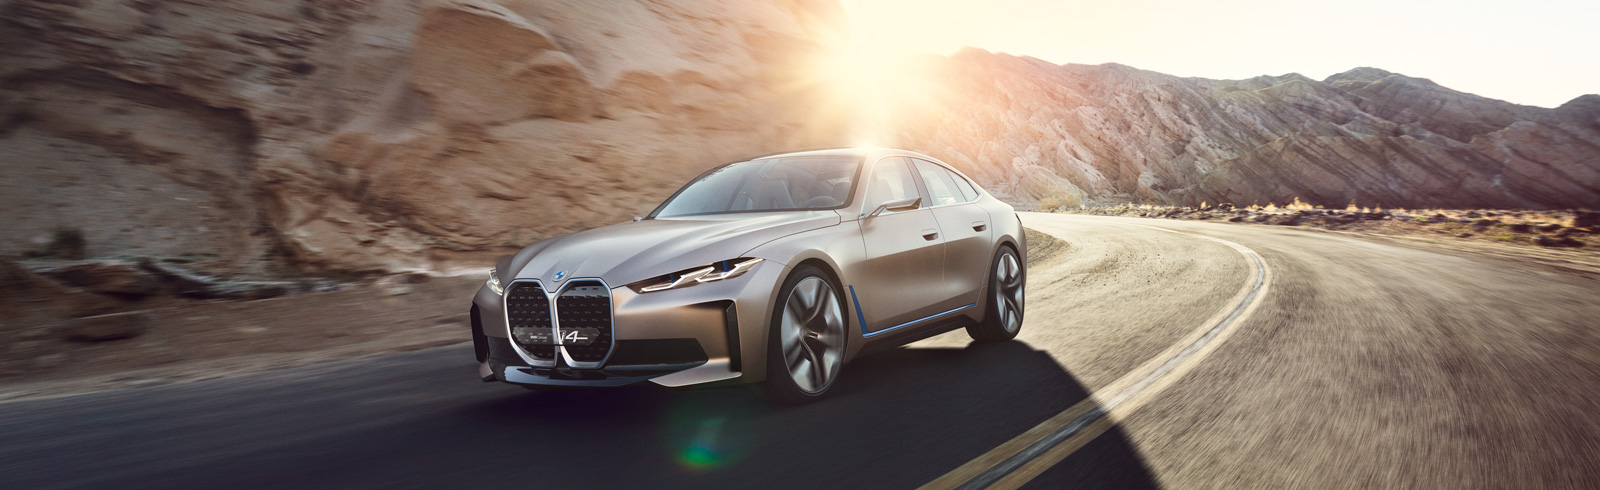 BMW remodels its Munich plant for the production of the BMW i4